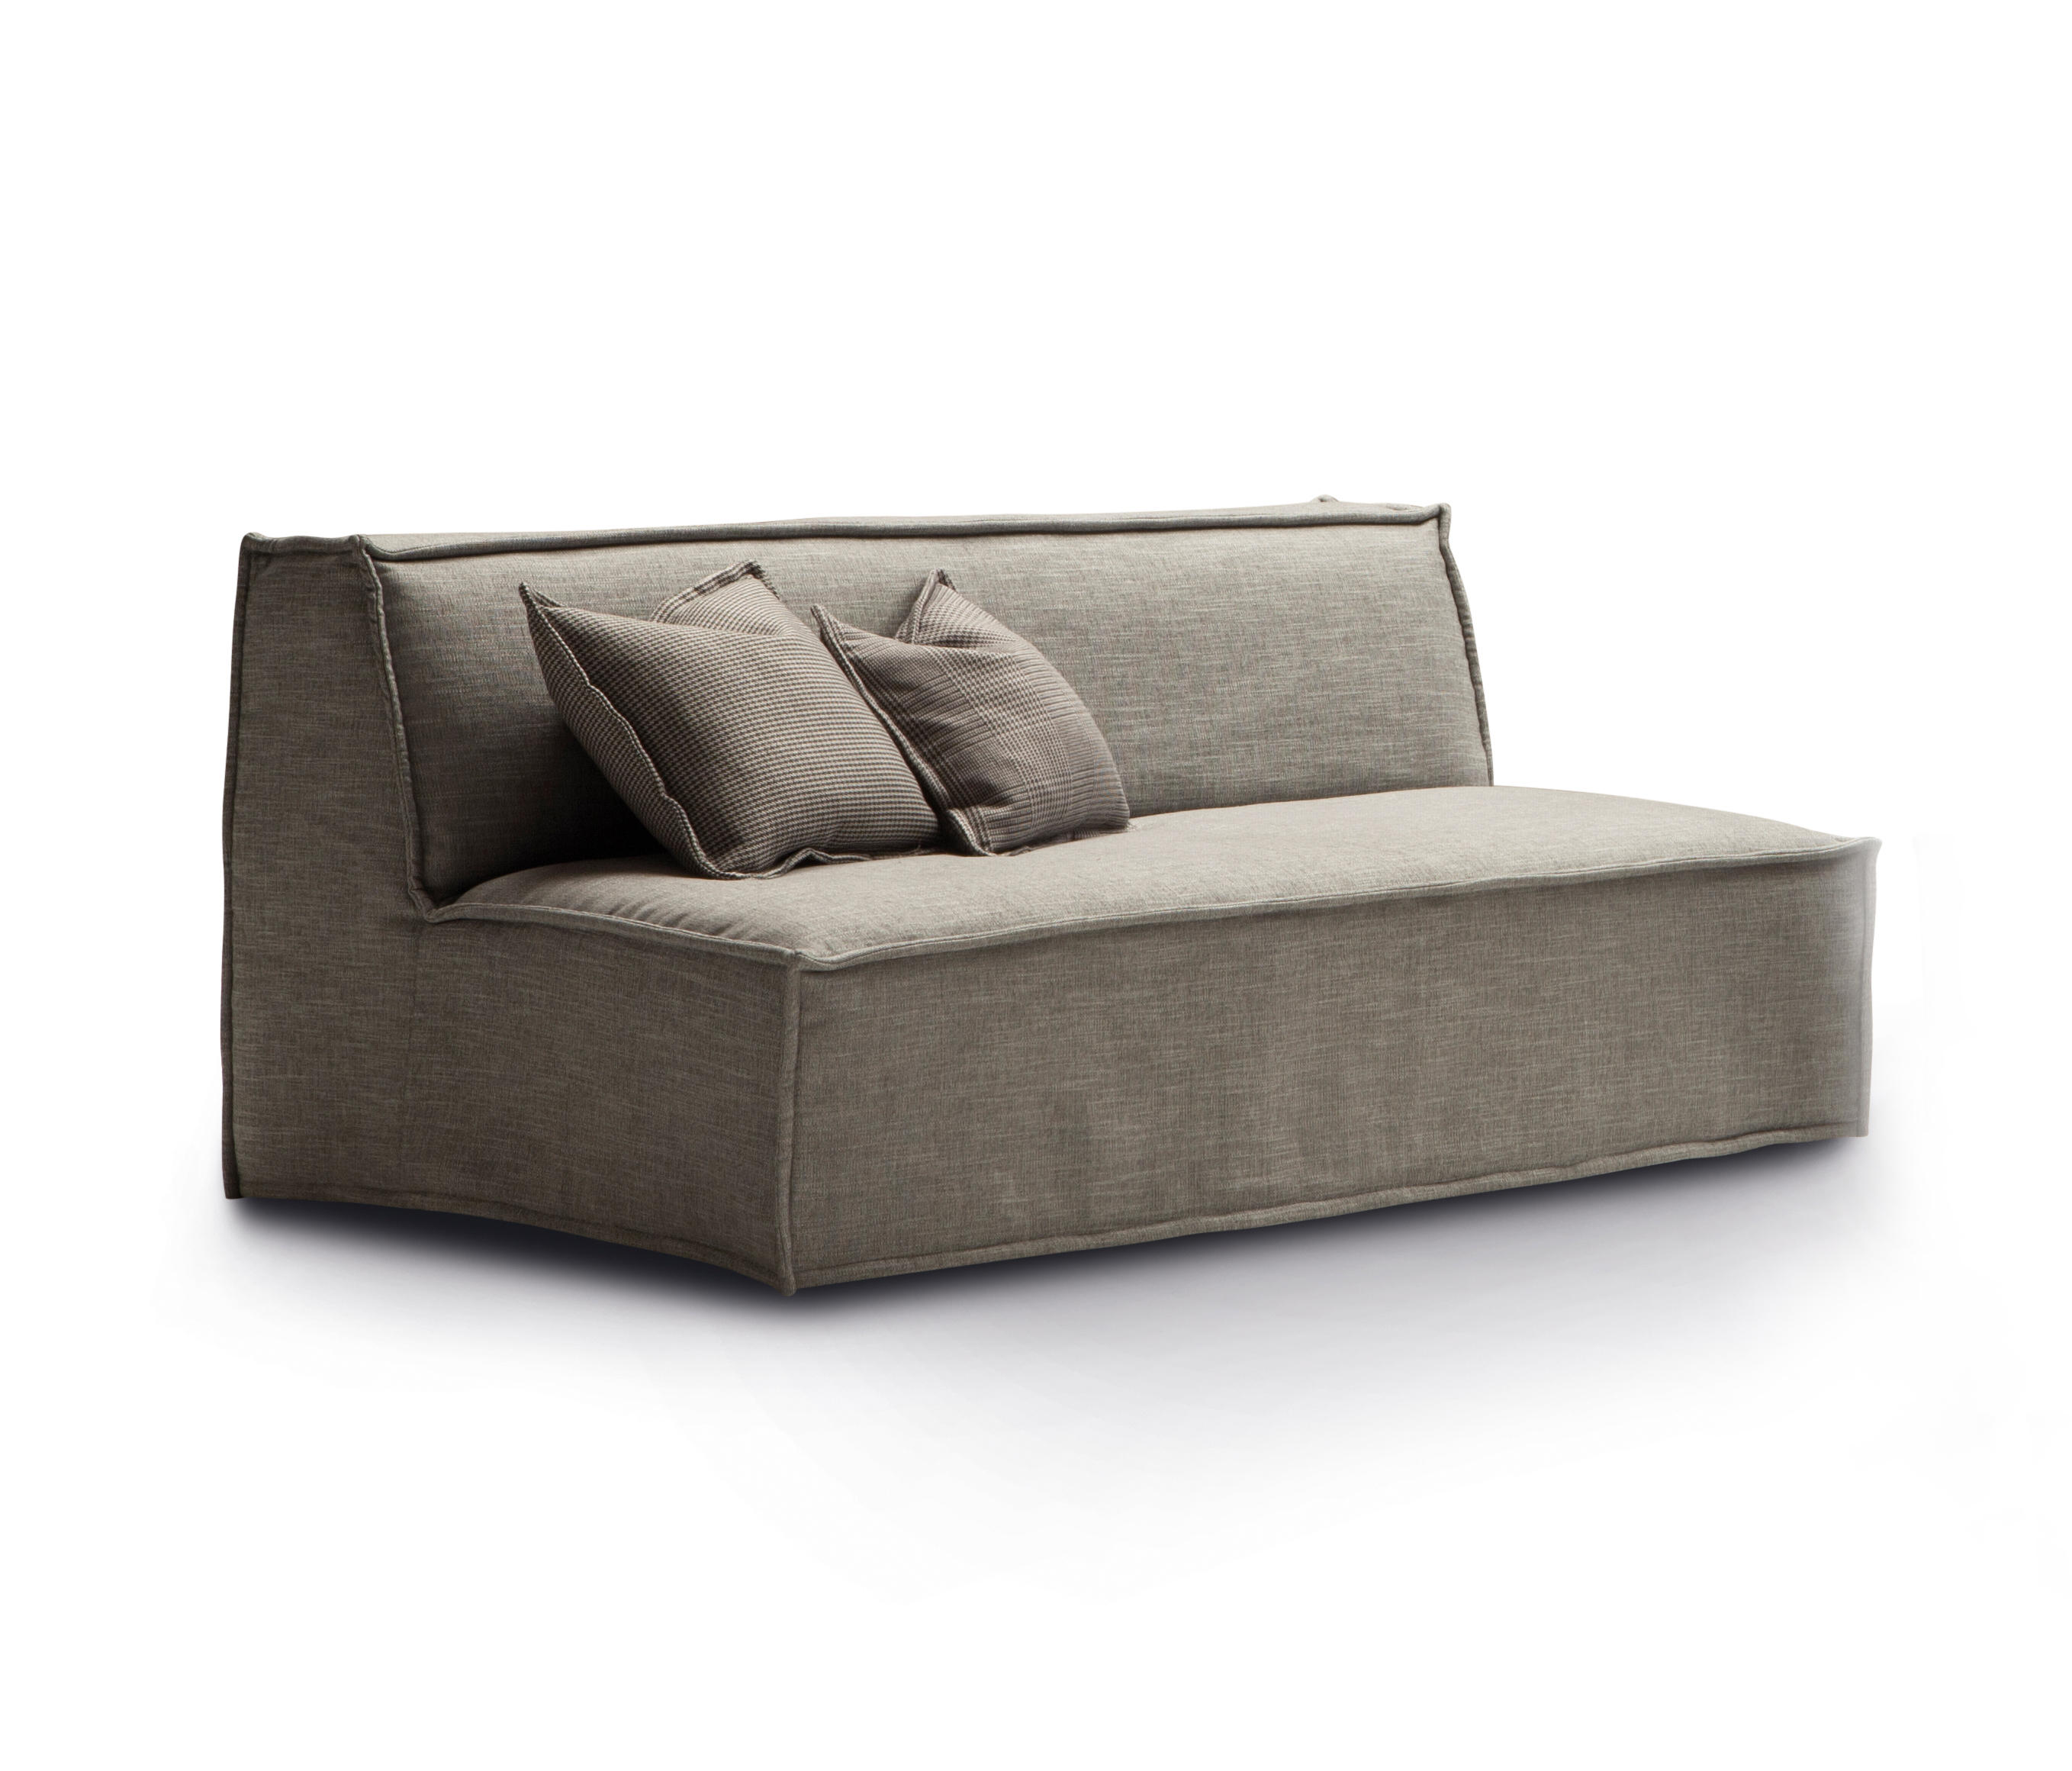 Tommy By Milano Bedding Sofas